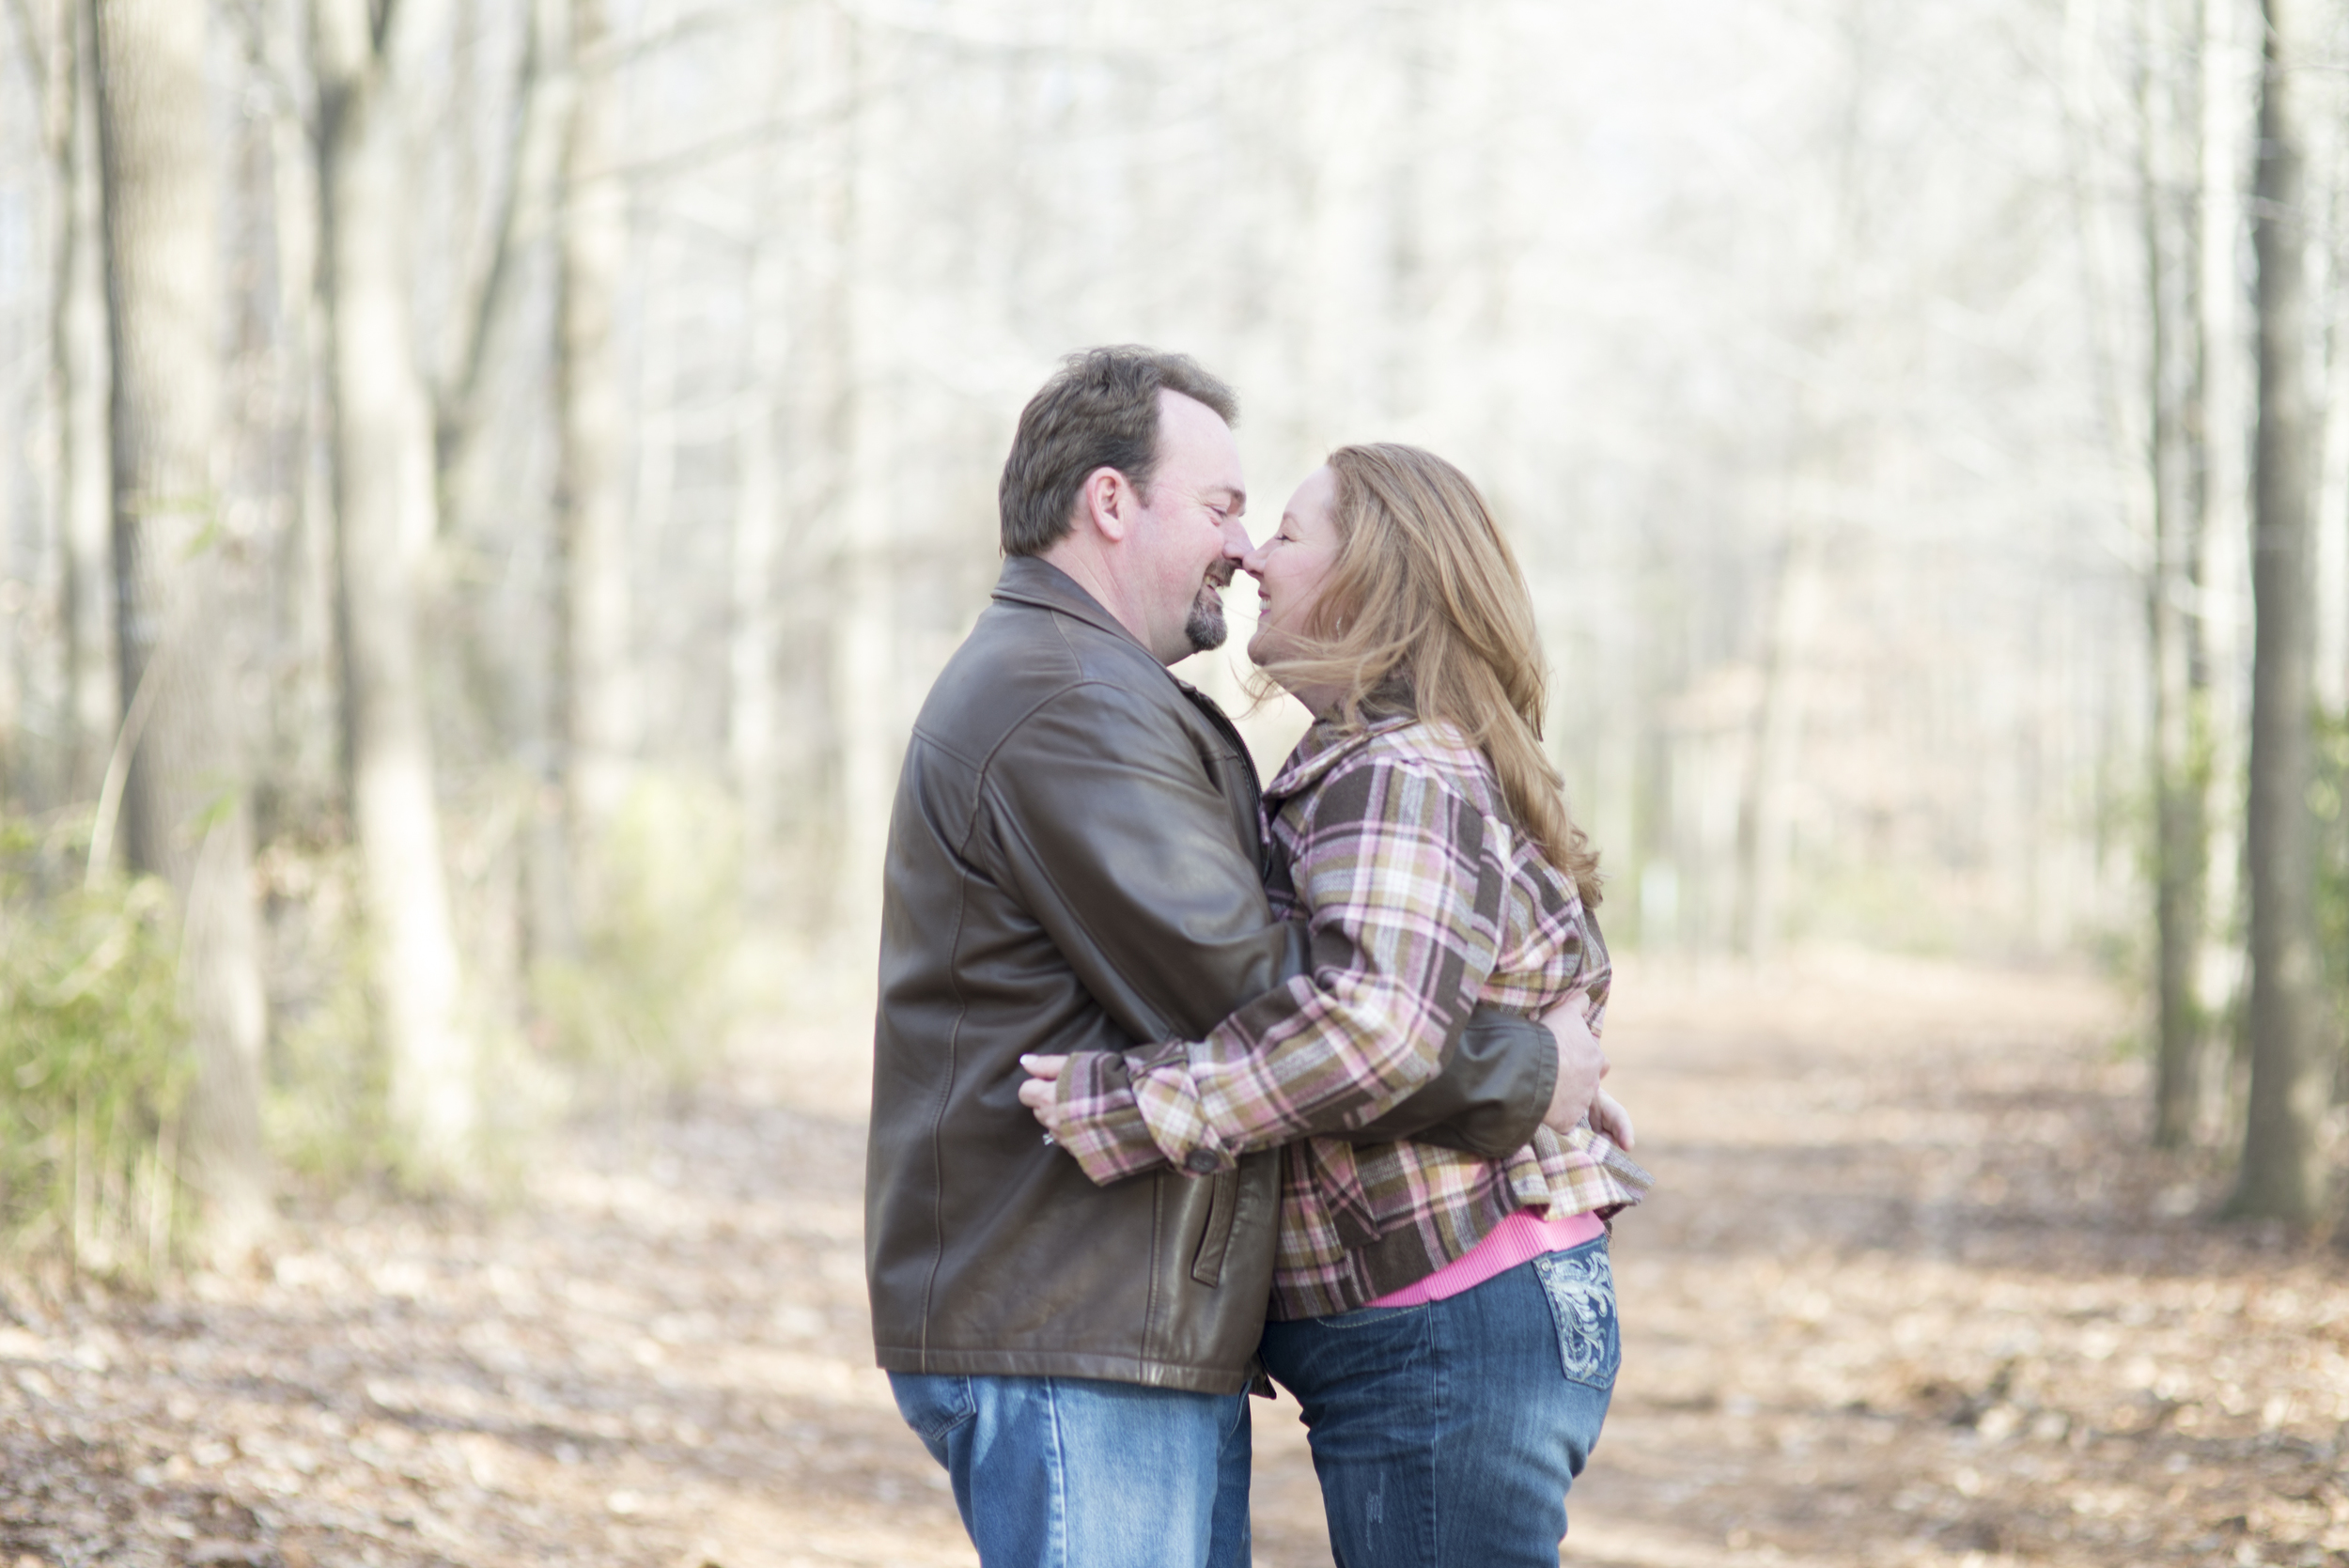 Romantic, intimate engagement session poses